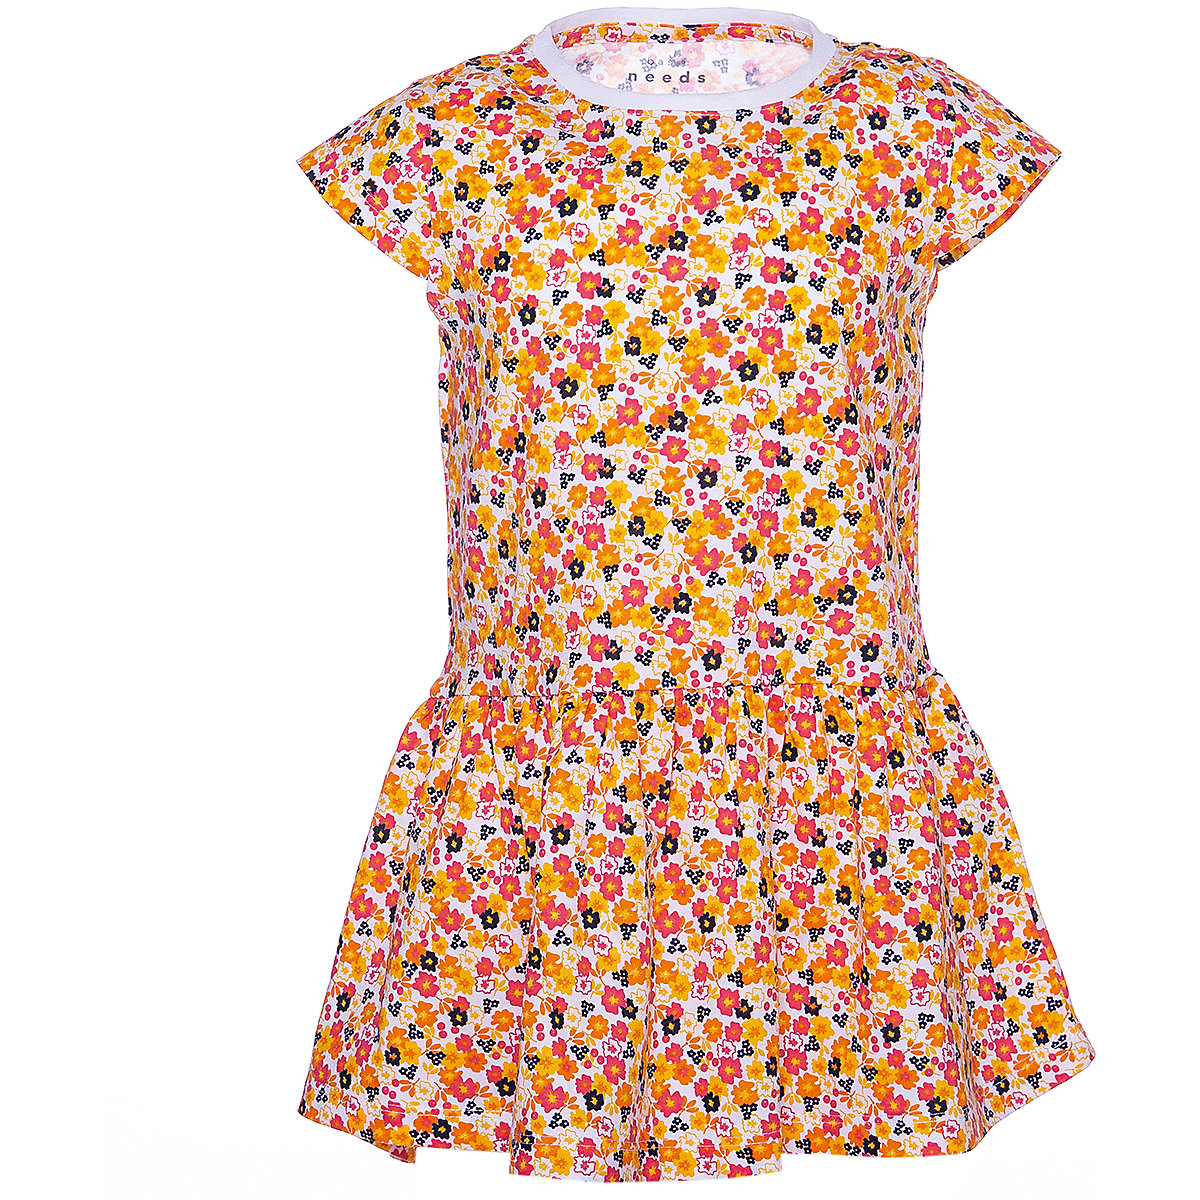 NAME IT Dresses 10626567 Dress girl children checkered pattern collar fitted silhouette sequins Cotton Casual Multi Short Sleeve